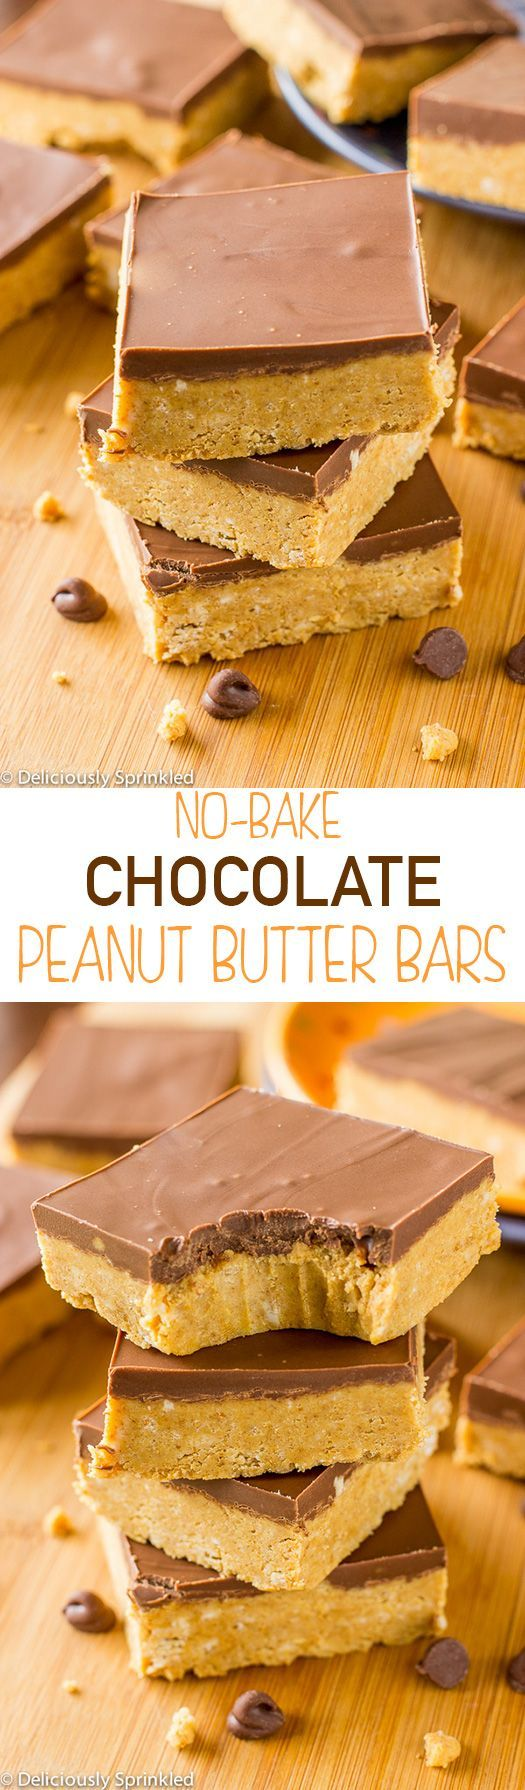 No-Bake Chocolate Peanut Butter Bars - BEST no-bake dessert ever and their super simple to make